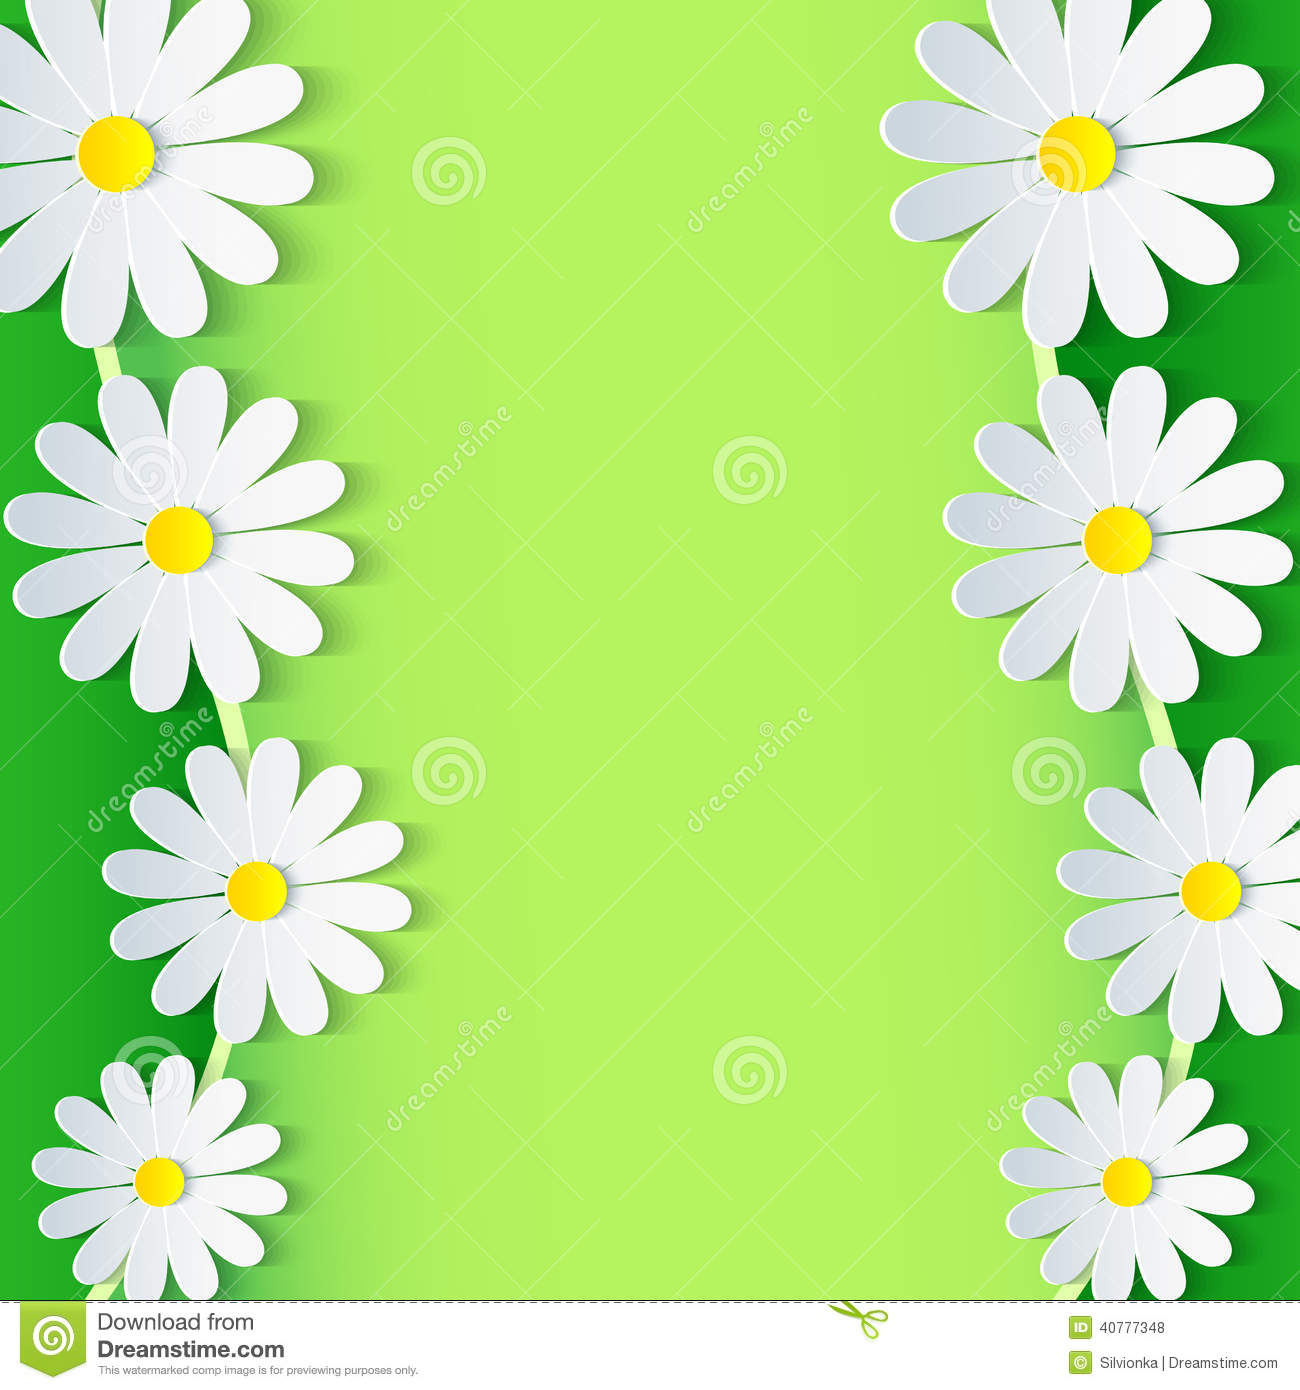 beautiful nature backgrounds flower frames wwwpixshark